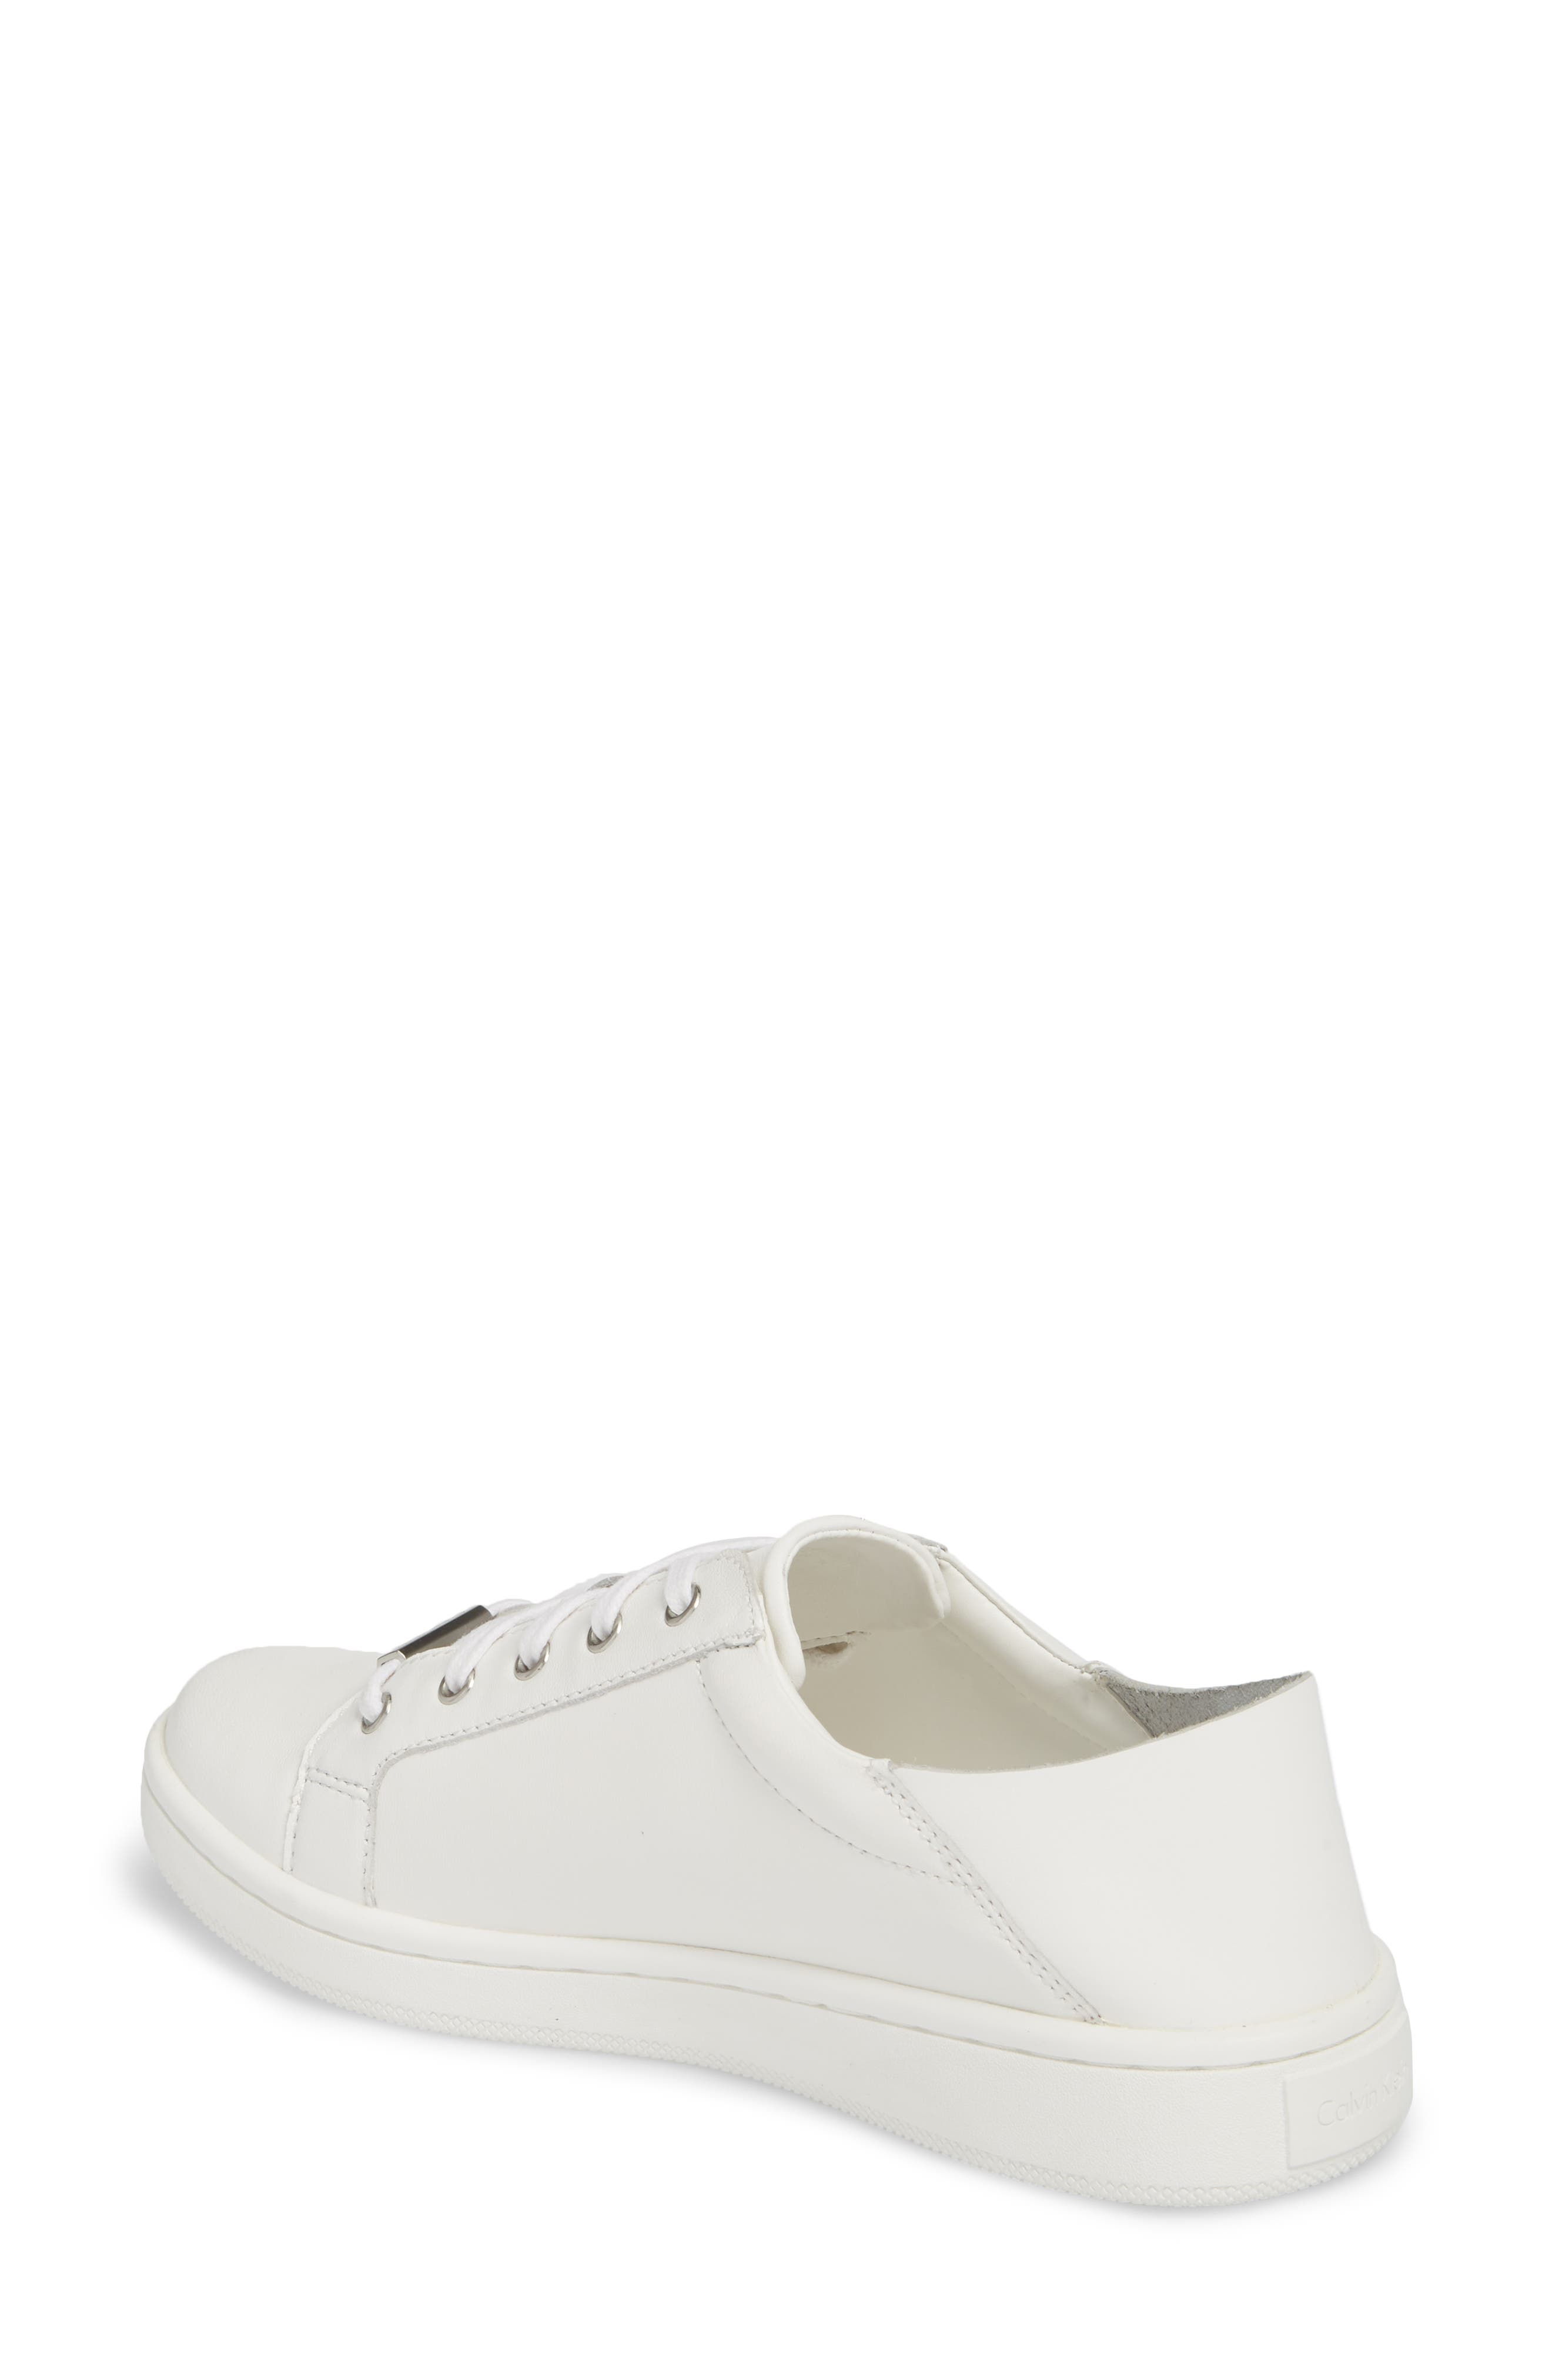 Danica Convertible Sneaker,                             Alternate thumbnail 2, color,                             White/ White Leather